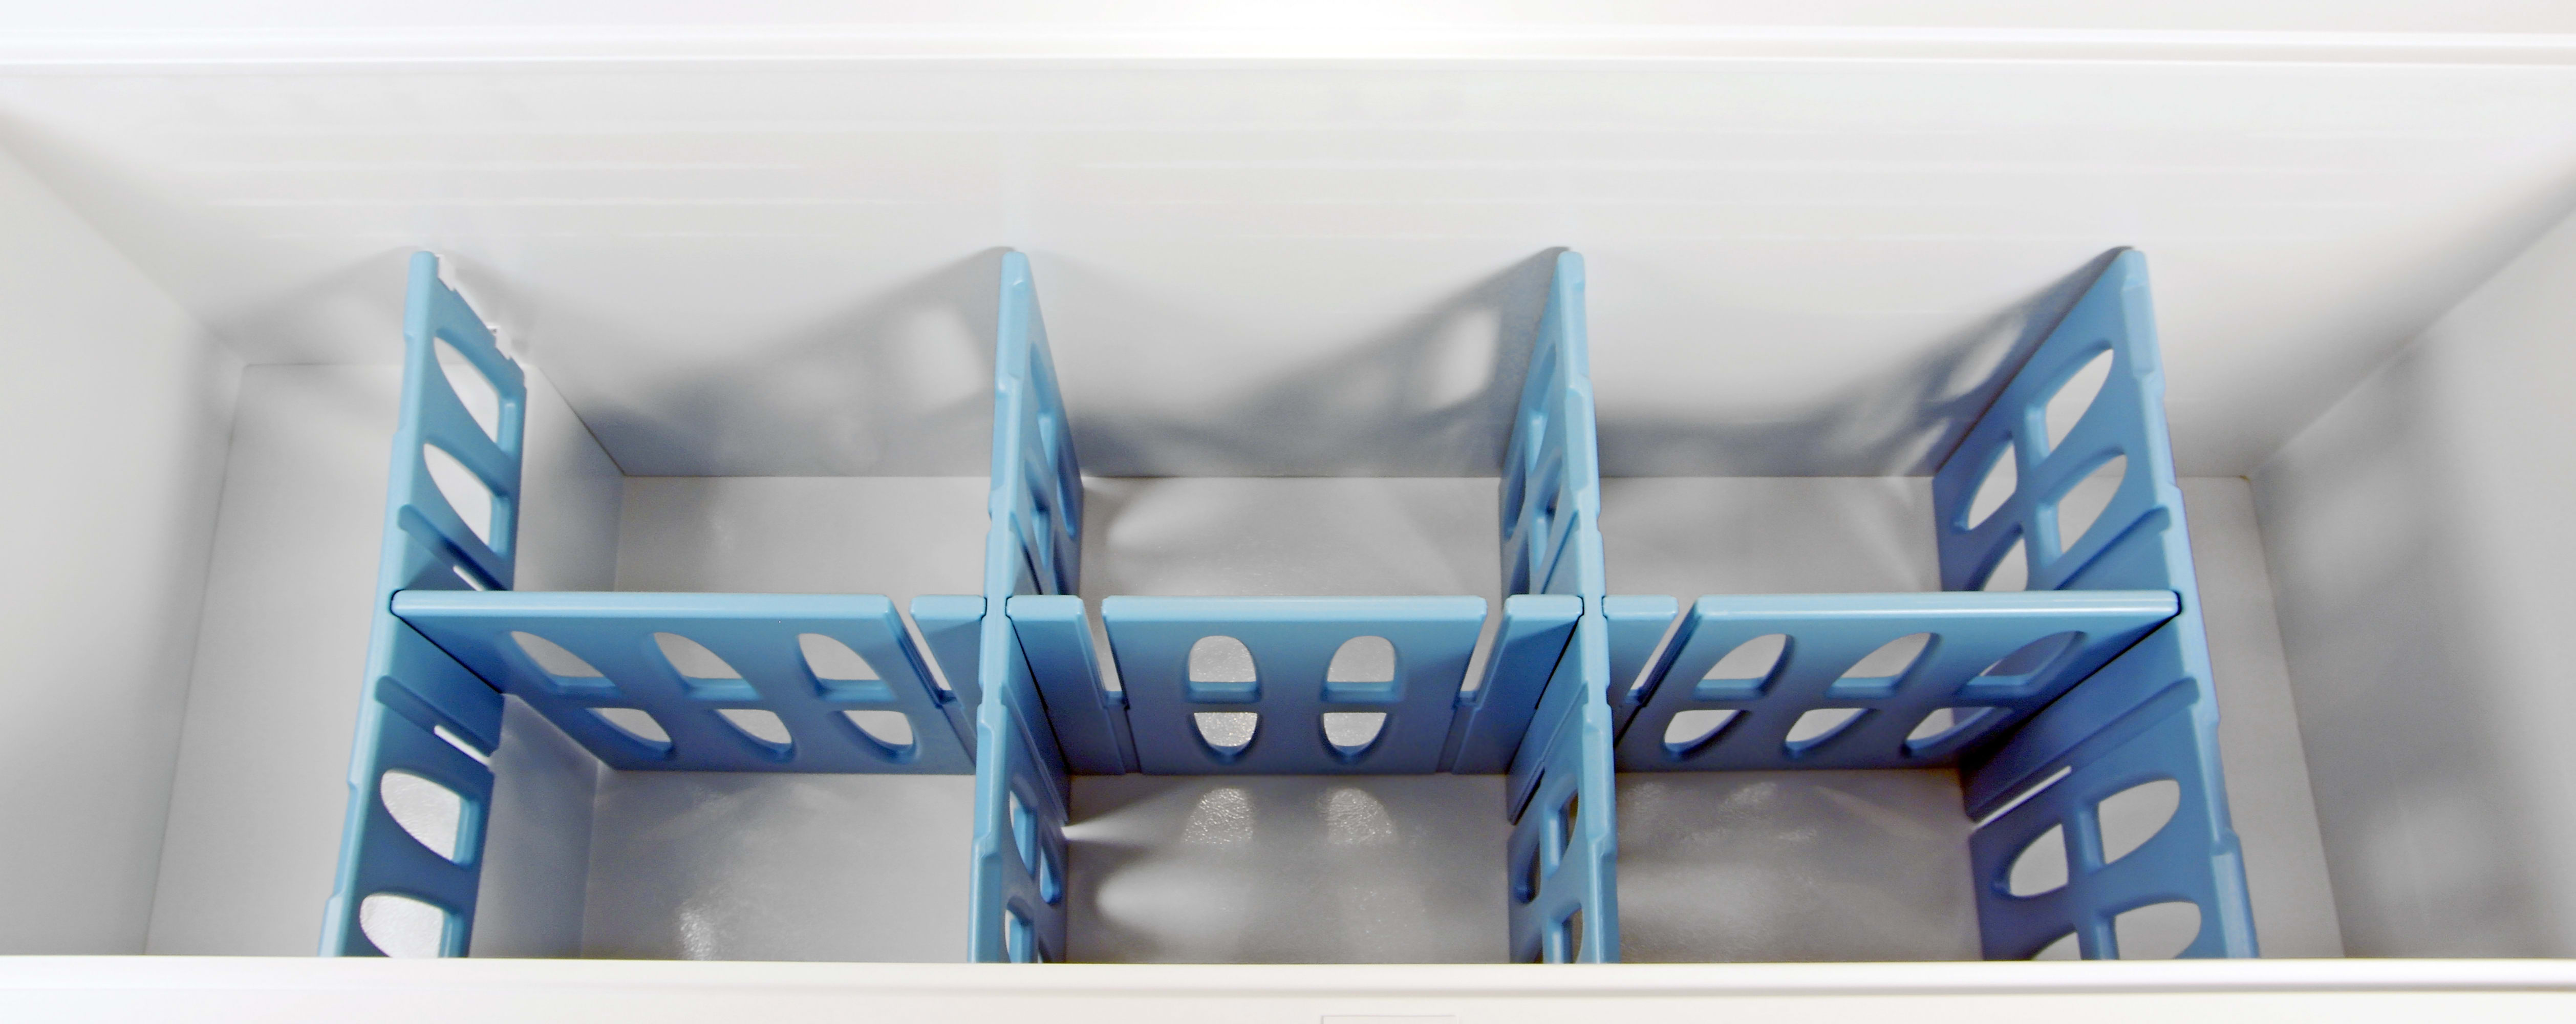 The Frigidaire Gallery FGCH25M8LW's large interior can be divided up using these five adjustable plastic dividers.